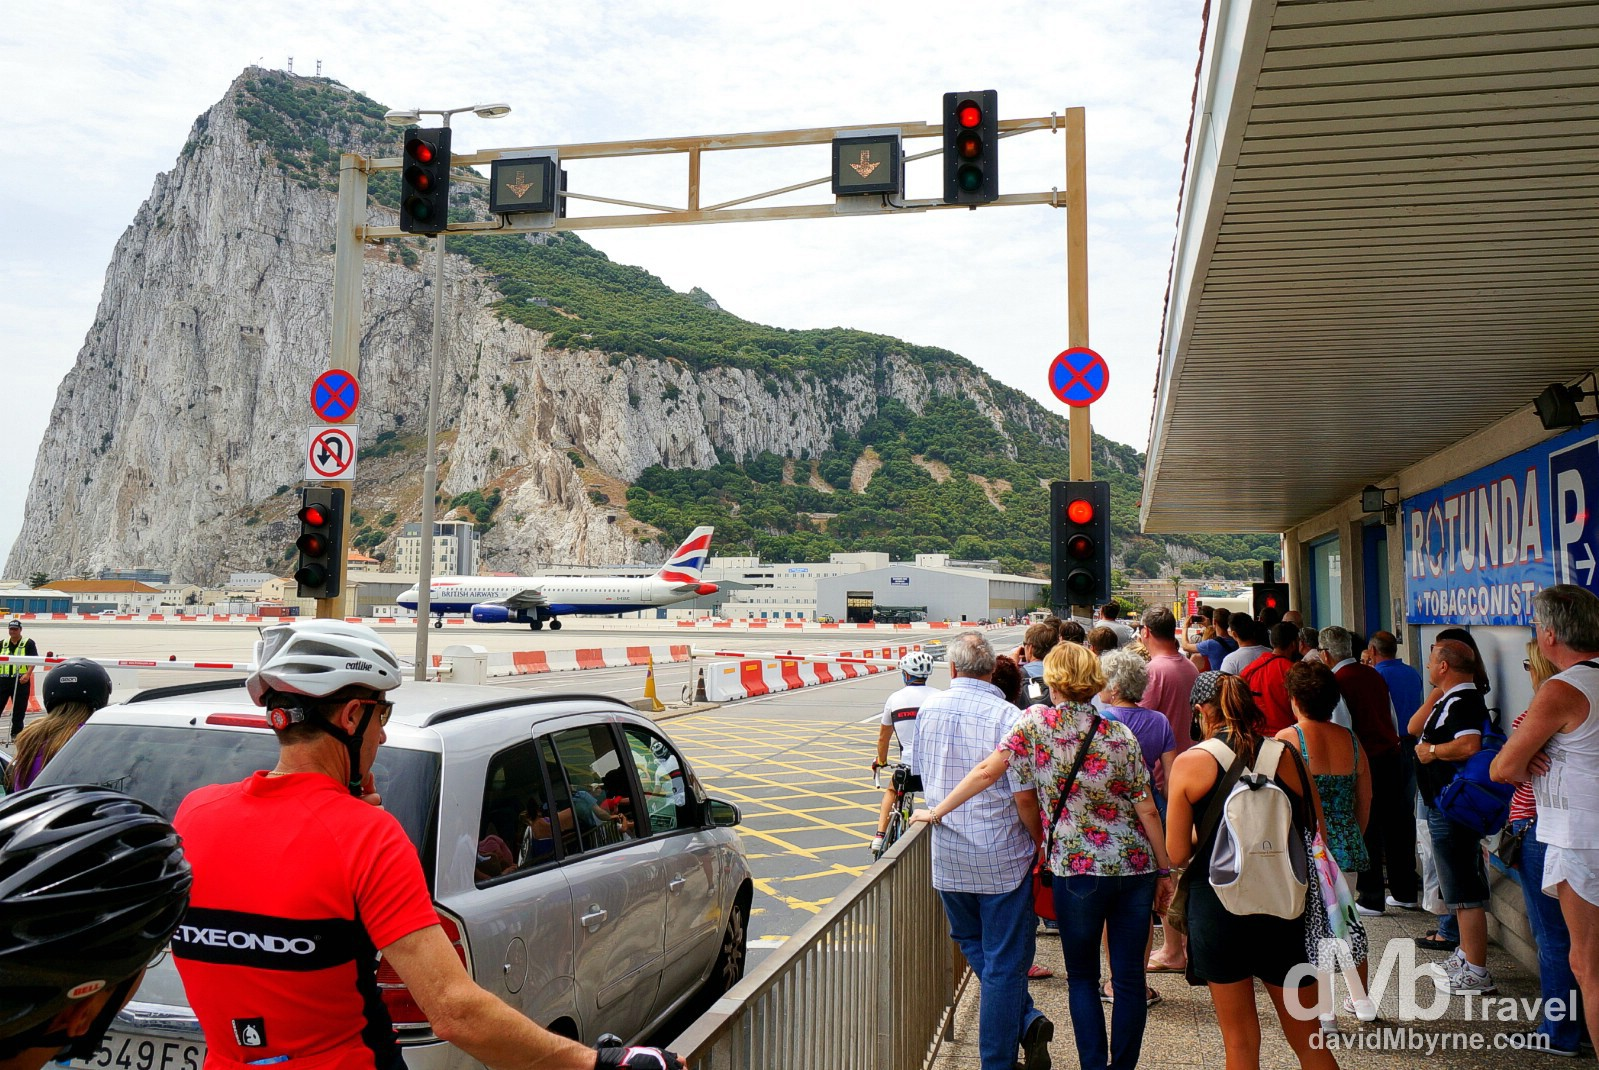 Pedestrians waiting for an arriving BA plane to taxi to its gate to enable passage across the runway of the International Airport in Gibraltar. June 5th, 2014.